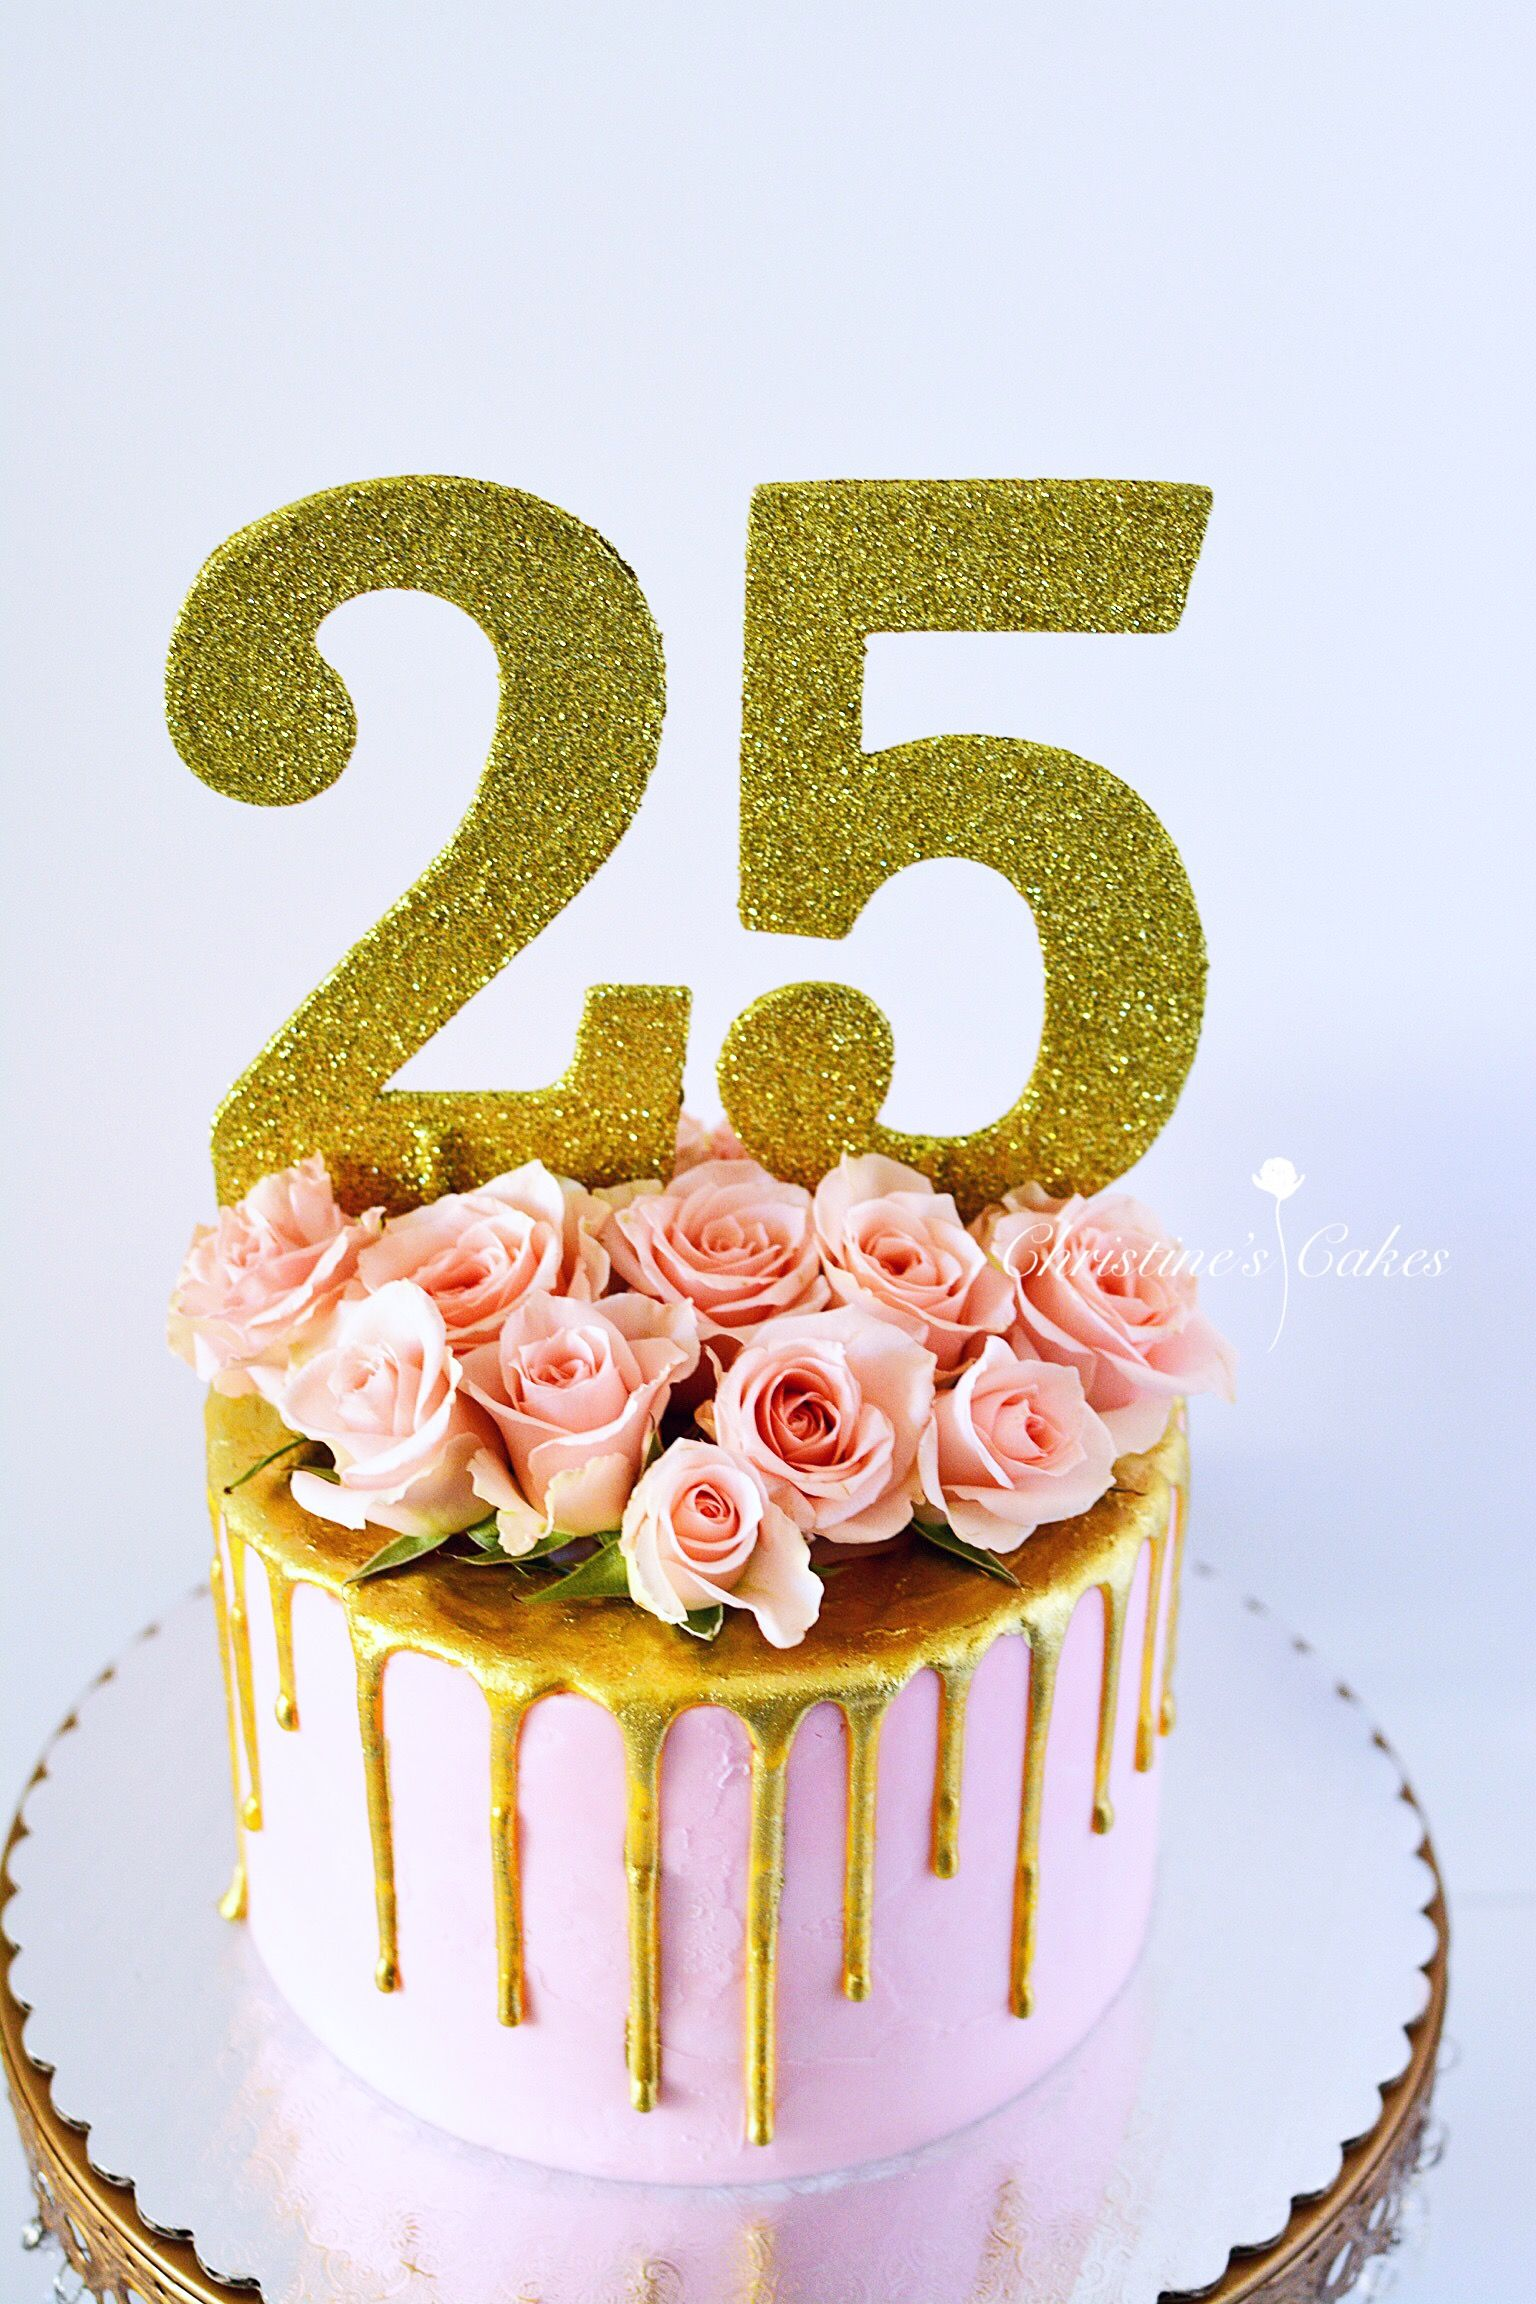 Enjoyable 25Th Birthday Birthday Cake Pink Spray Roses Floral Cake Gold Funny Birthday Cards Online Alyptdamsfinfo